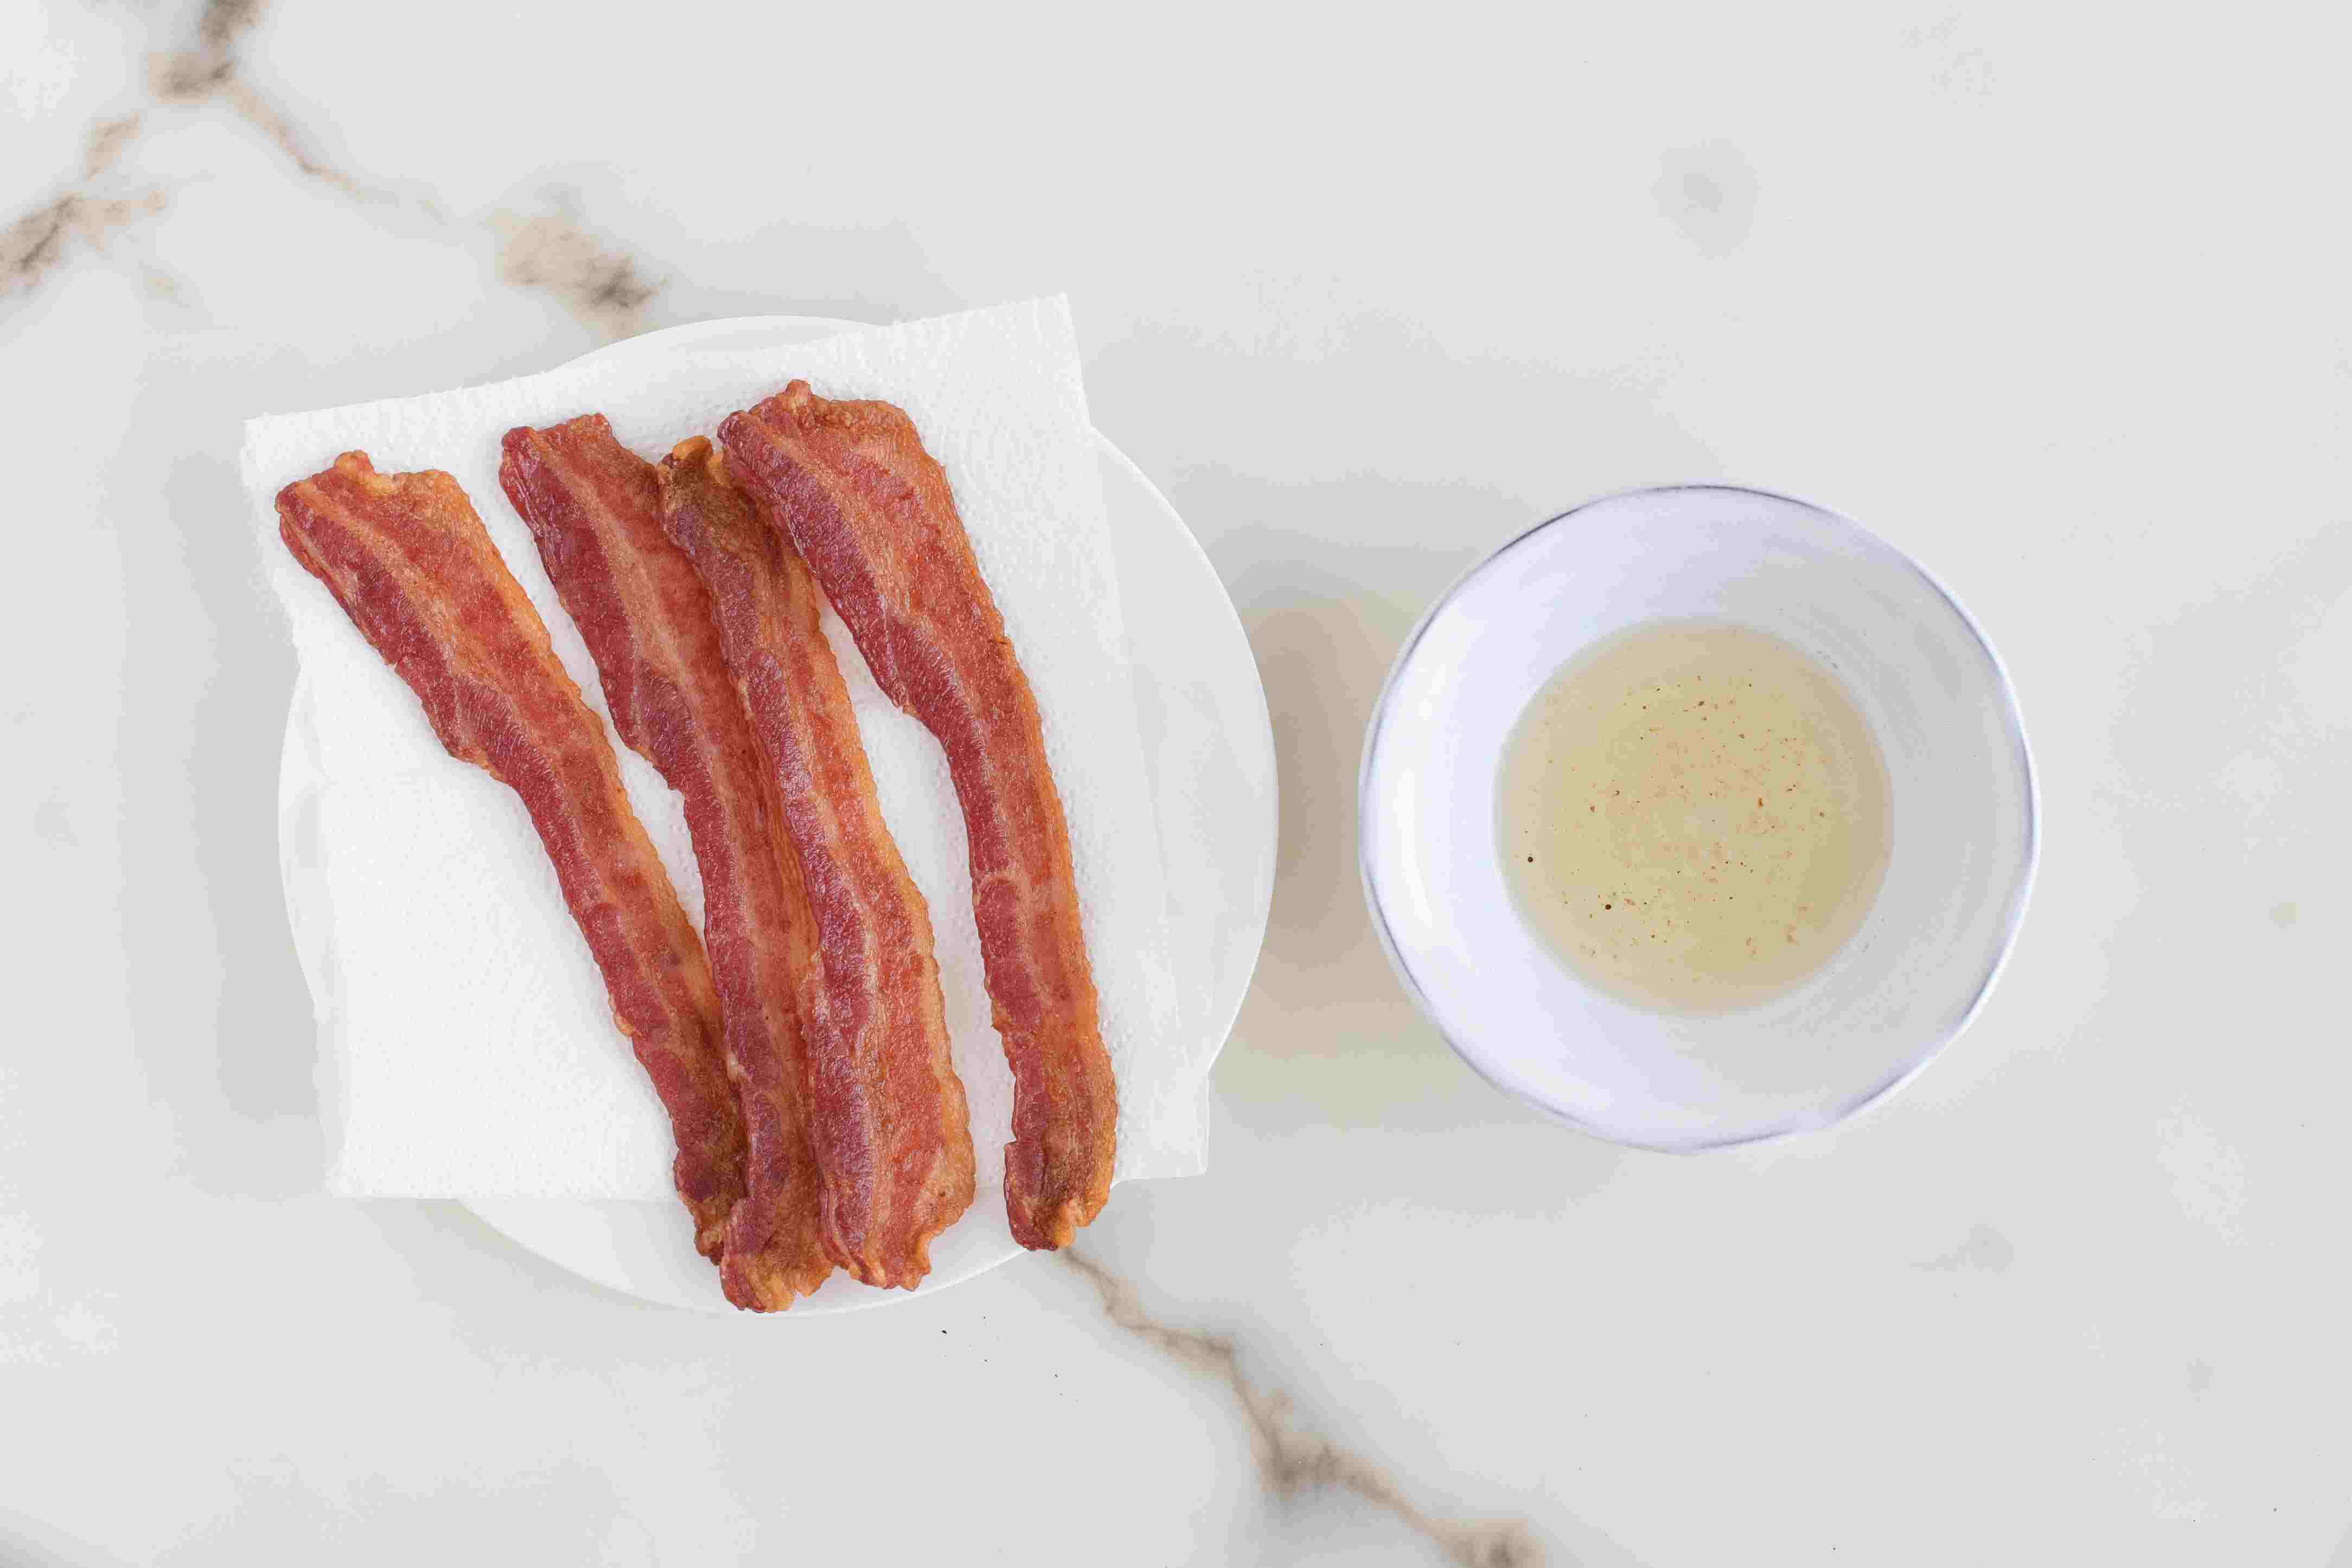 Bacon and grease